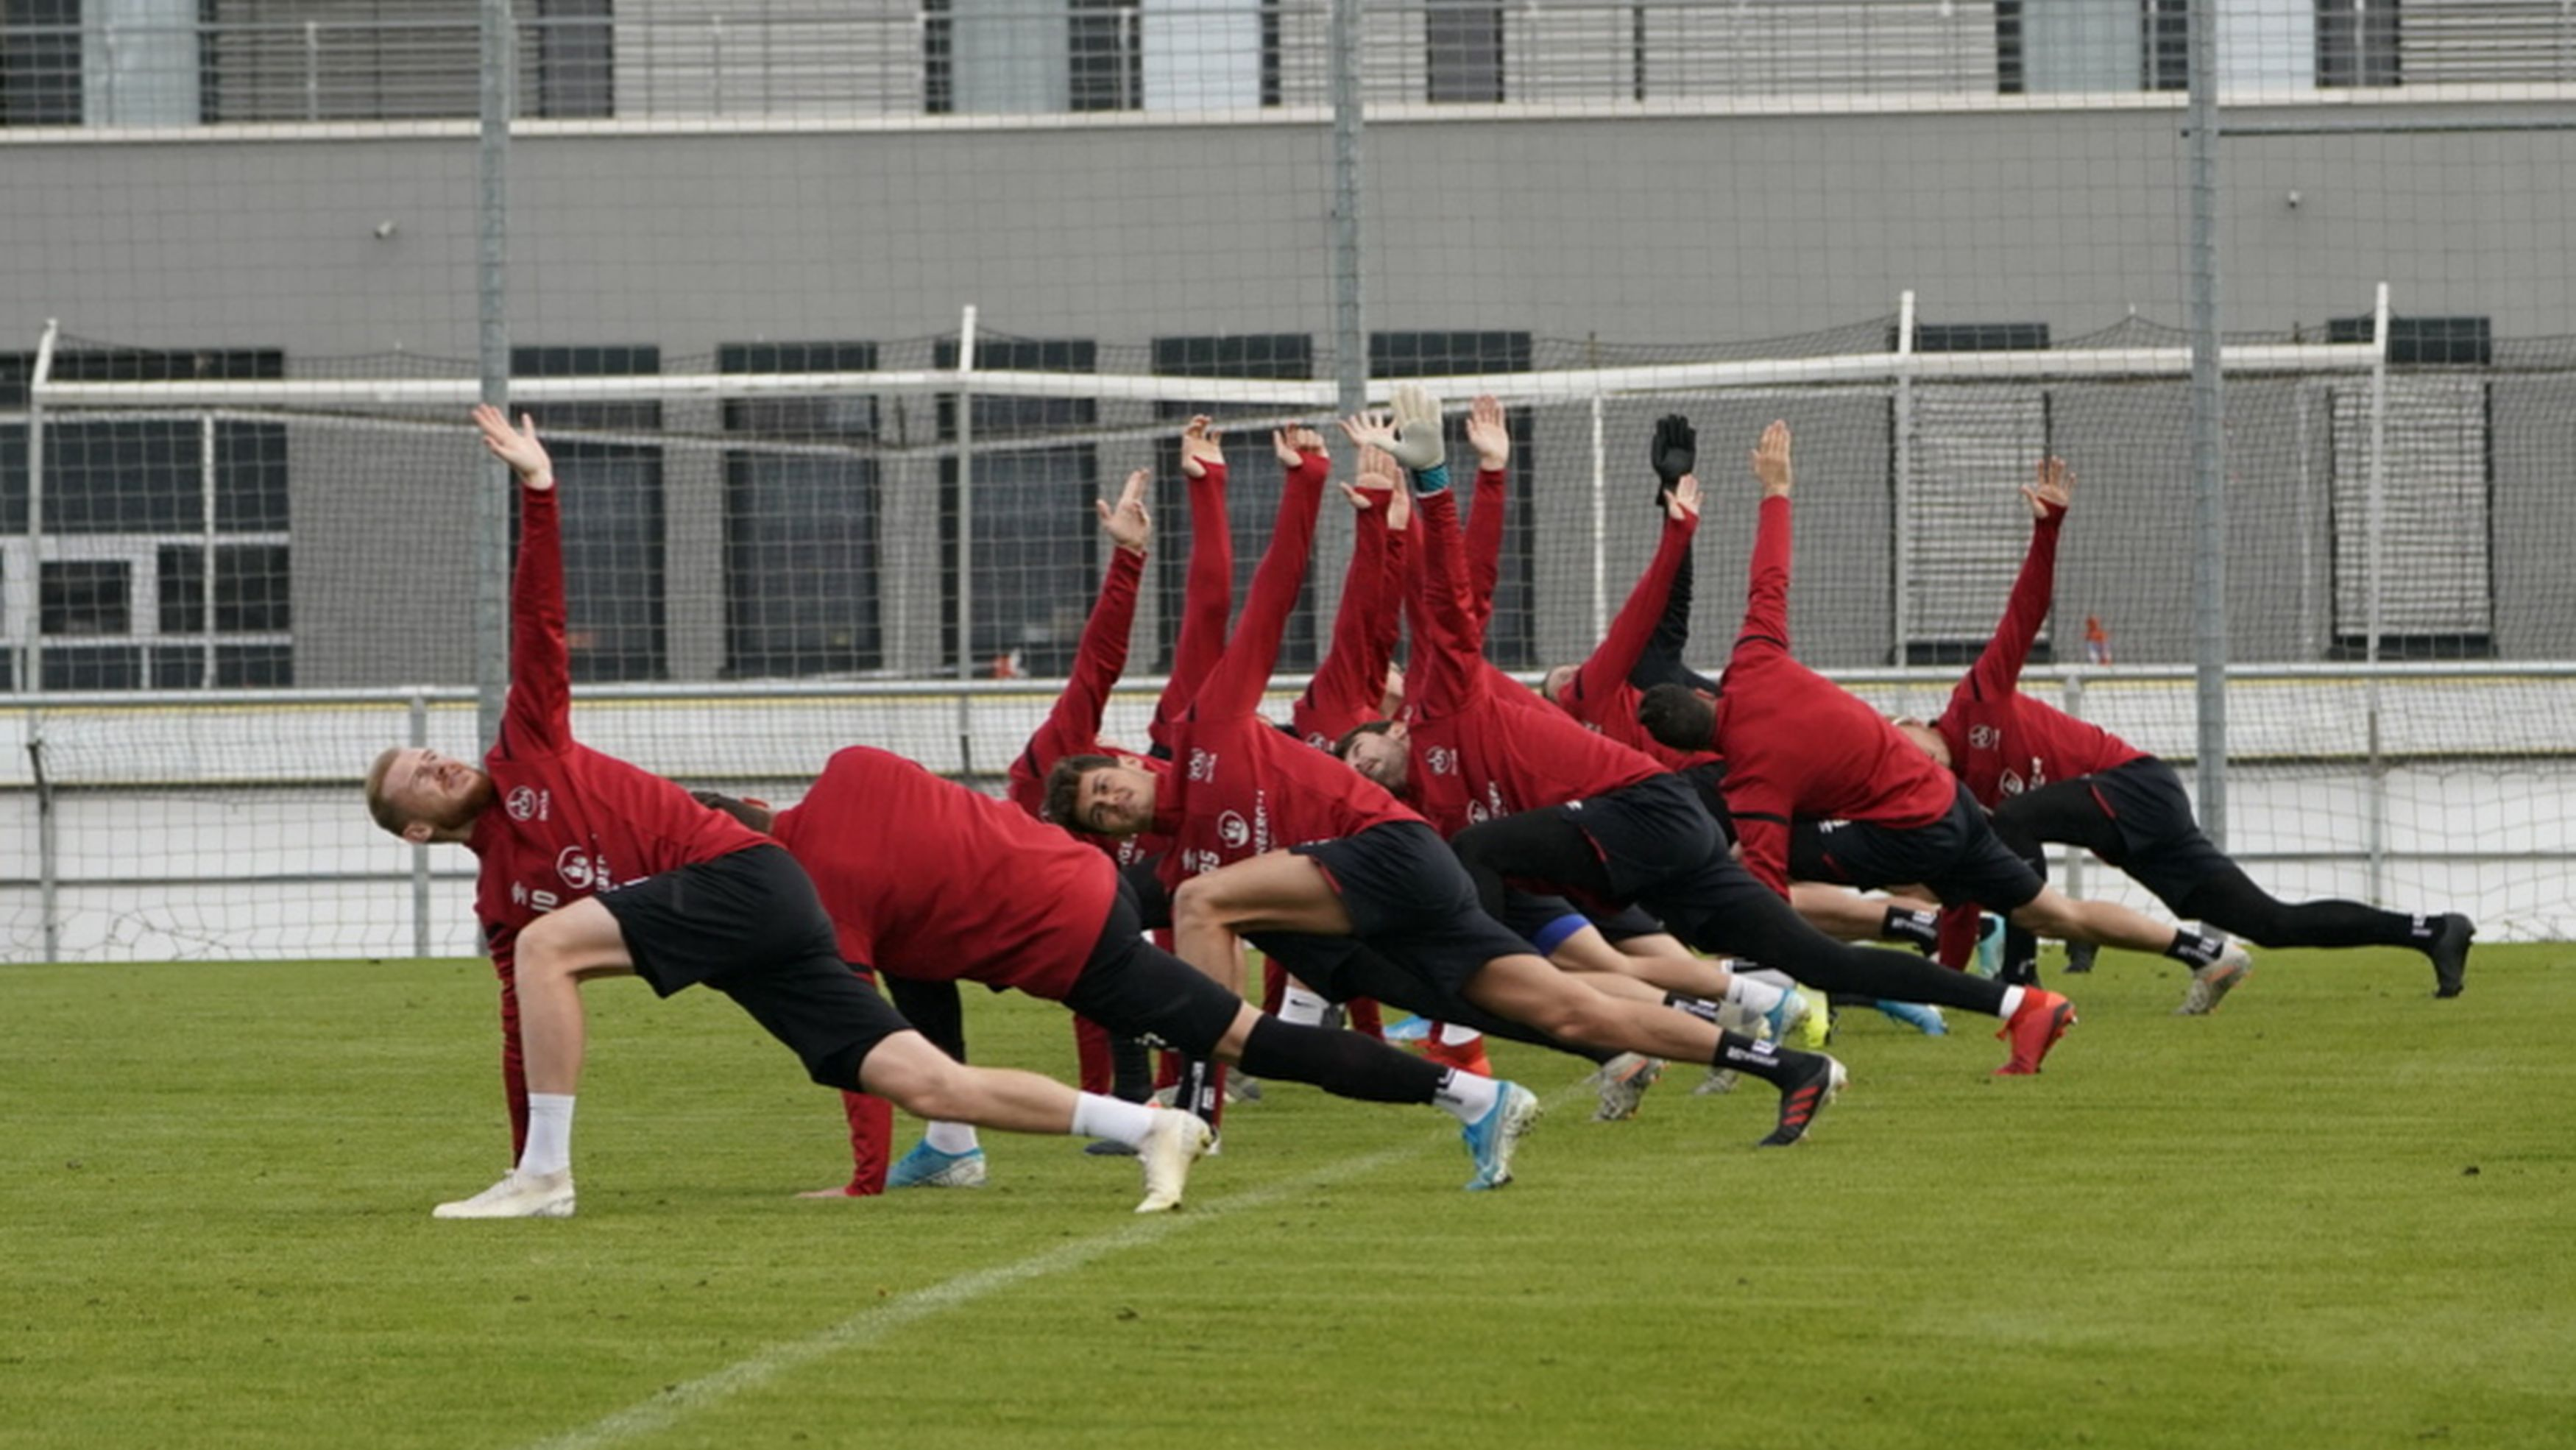 2. Fussball-Bundesliga 1. FC Nuernberg - Training